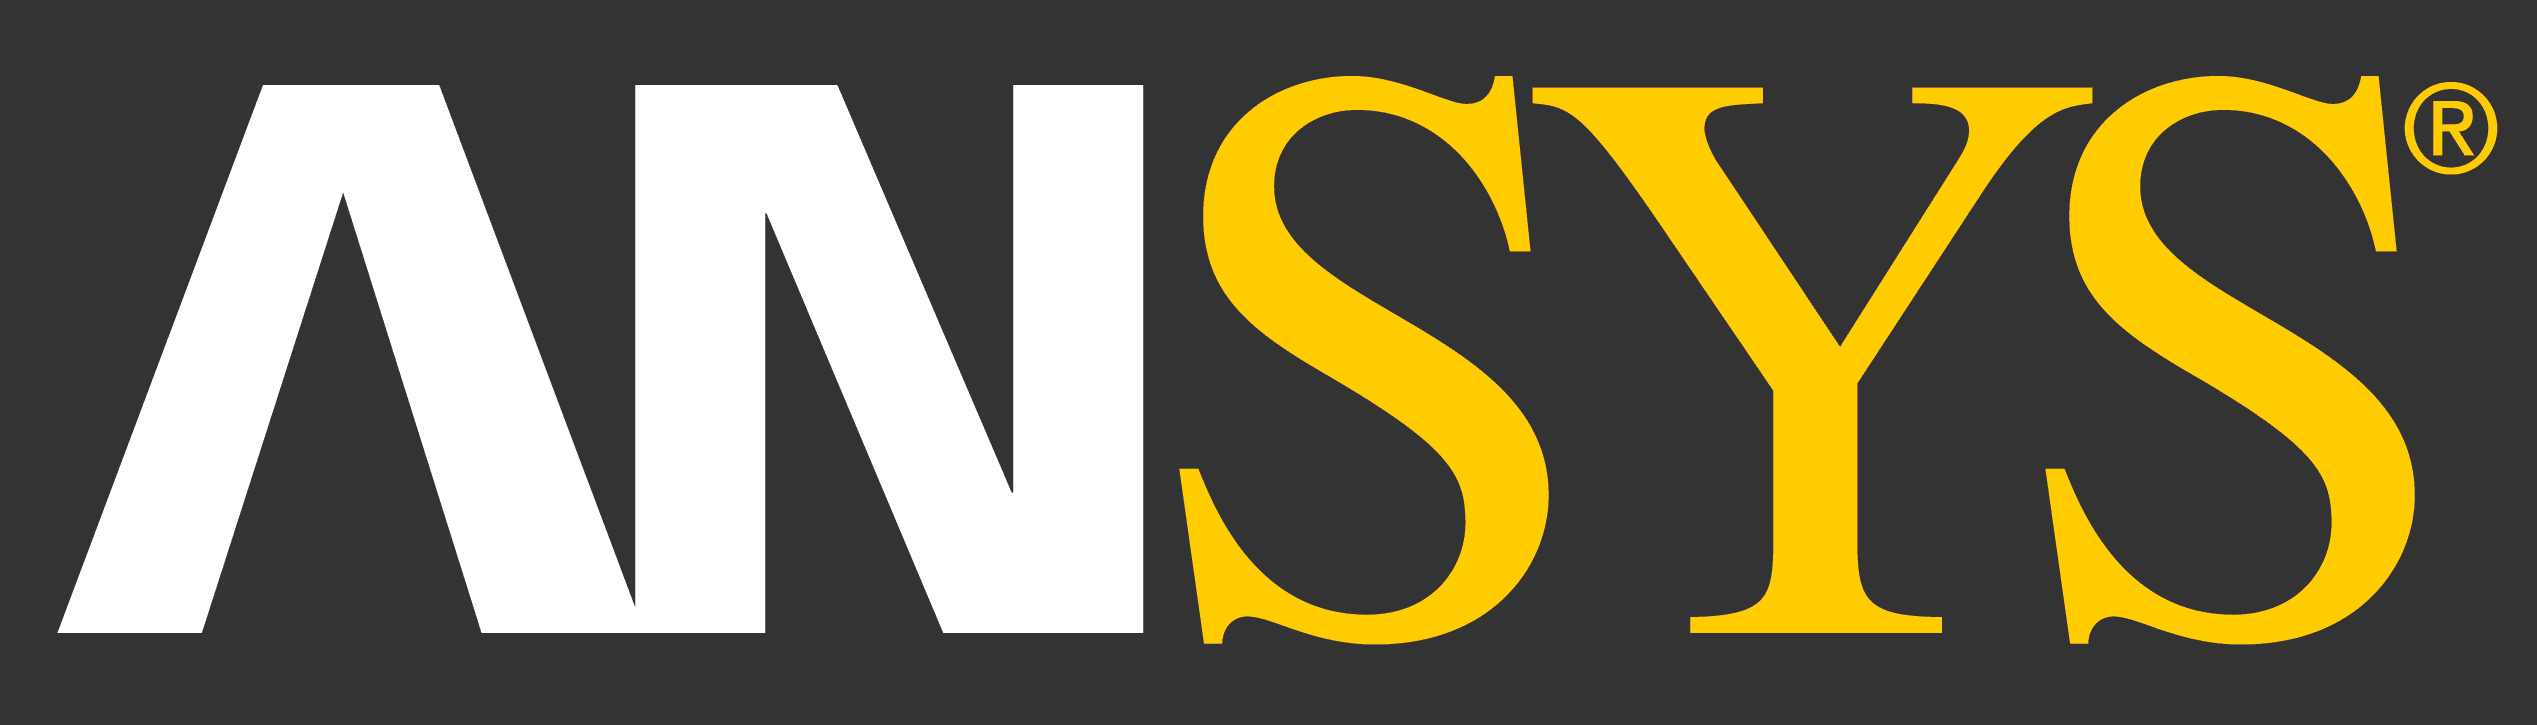 Ansys logo and The Internet of Things